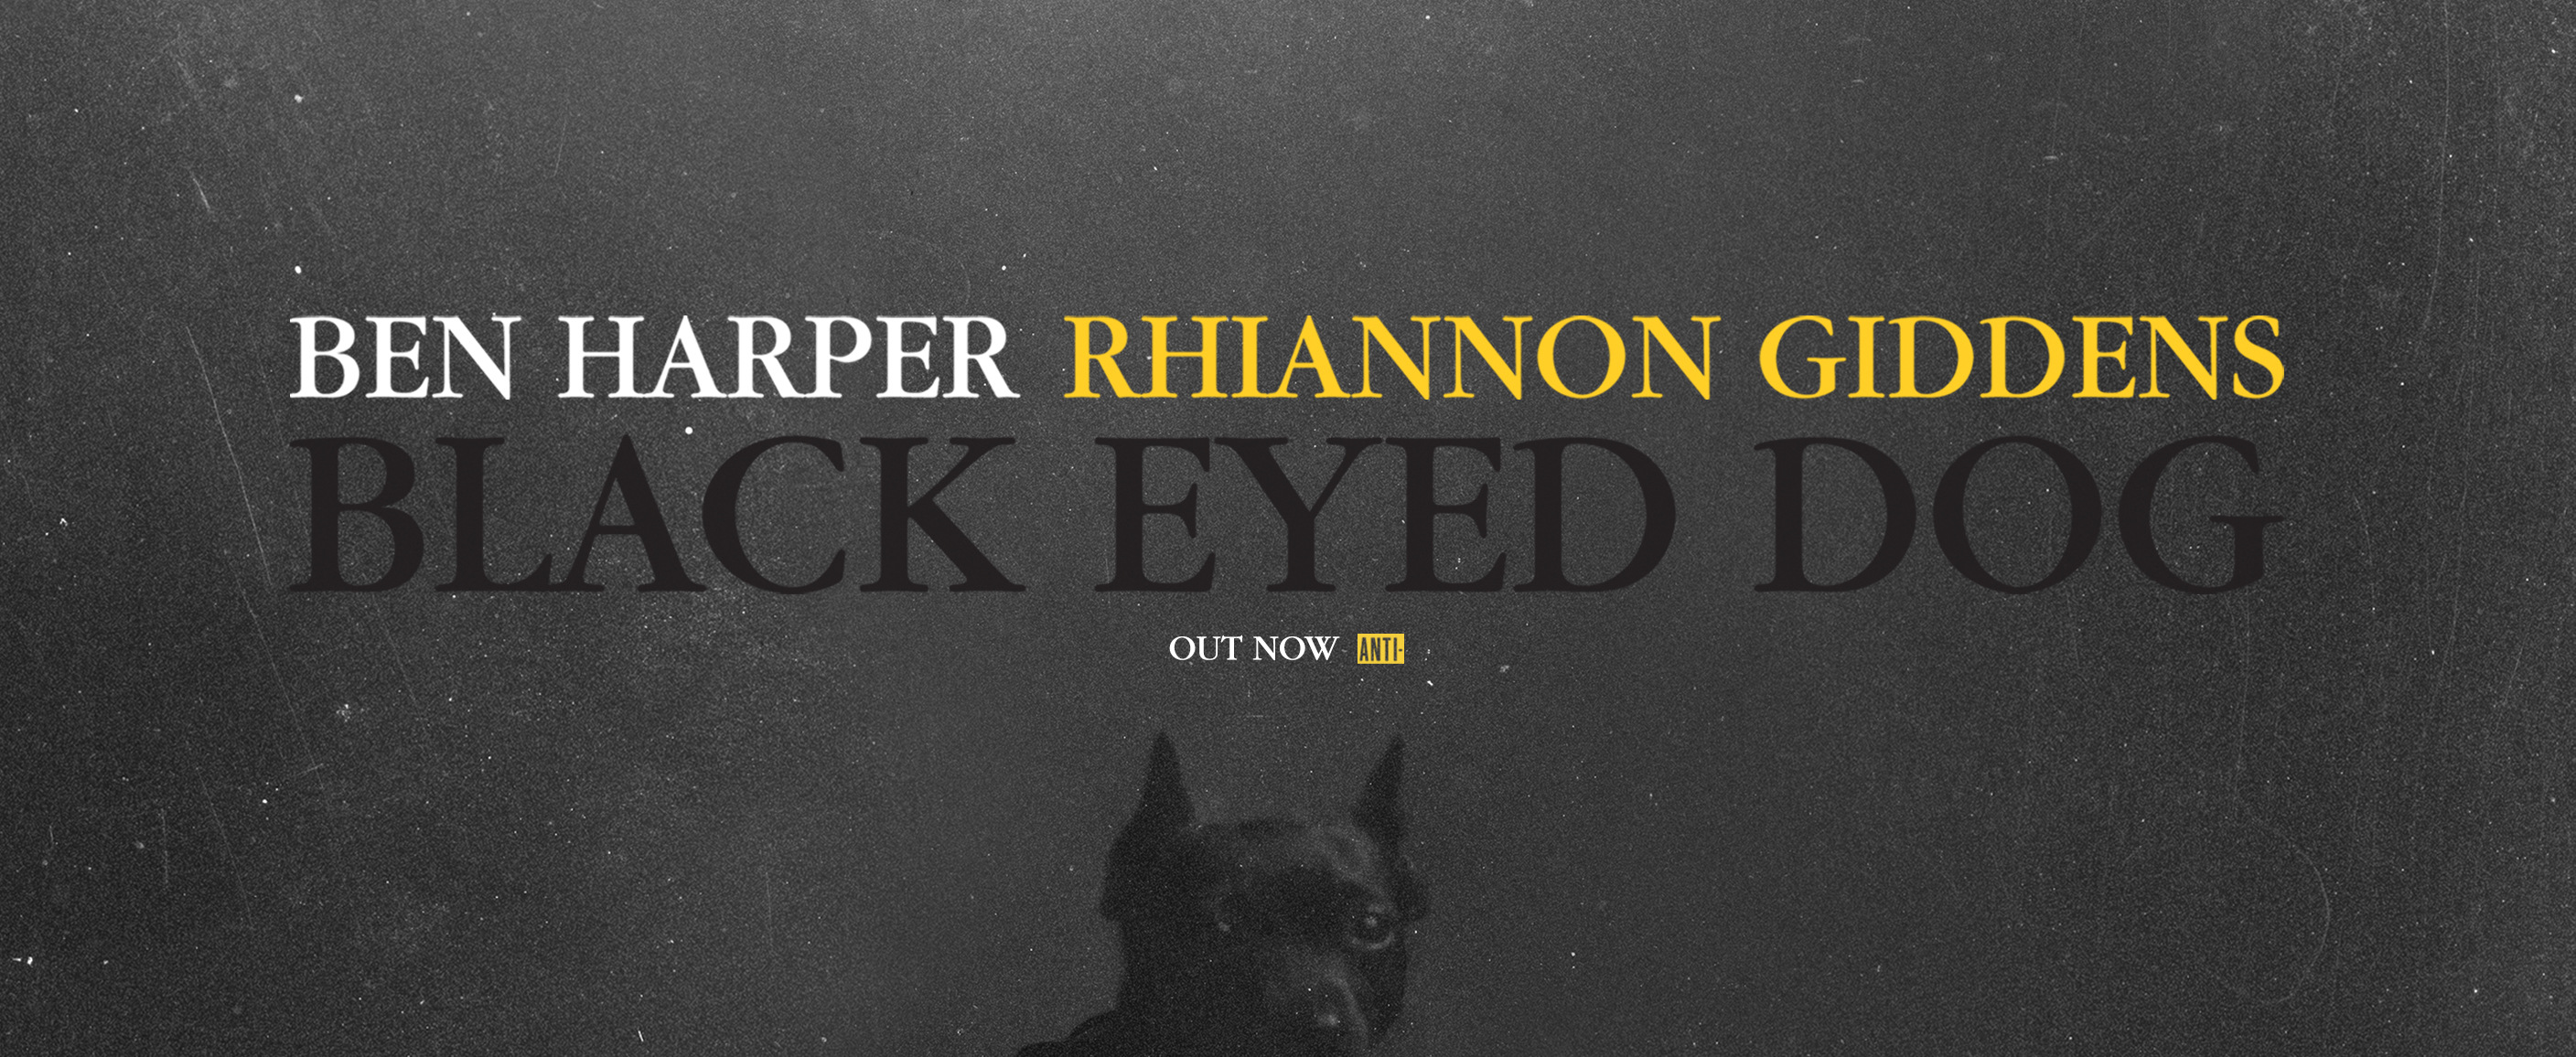 Ben Harper & Rhiannon Giddens - Black Eyed Dog